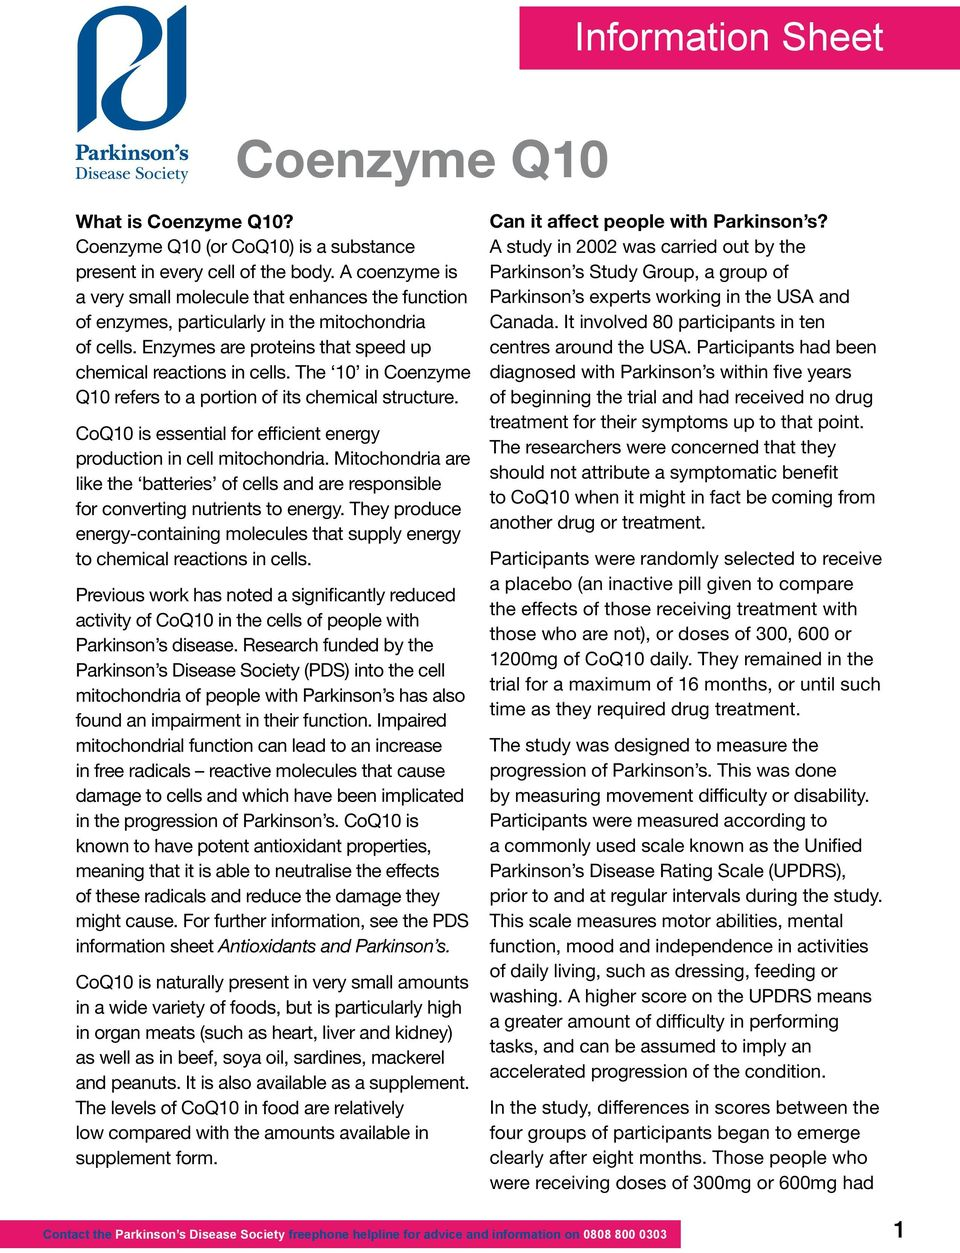 The 10 in Coenzyme Q10 refers to a portion of its chemical structure. CoQ10 is essential for efficient energy production in cell mitochondria.